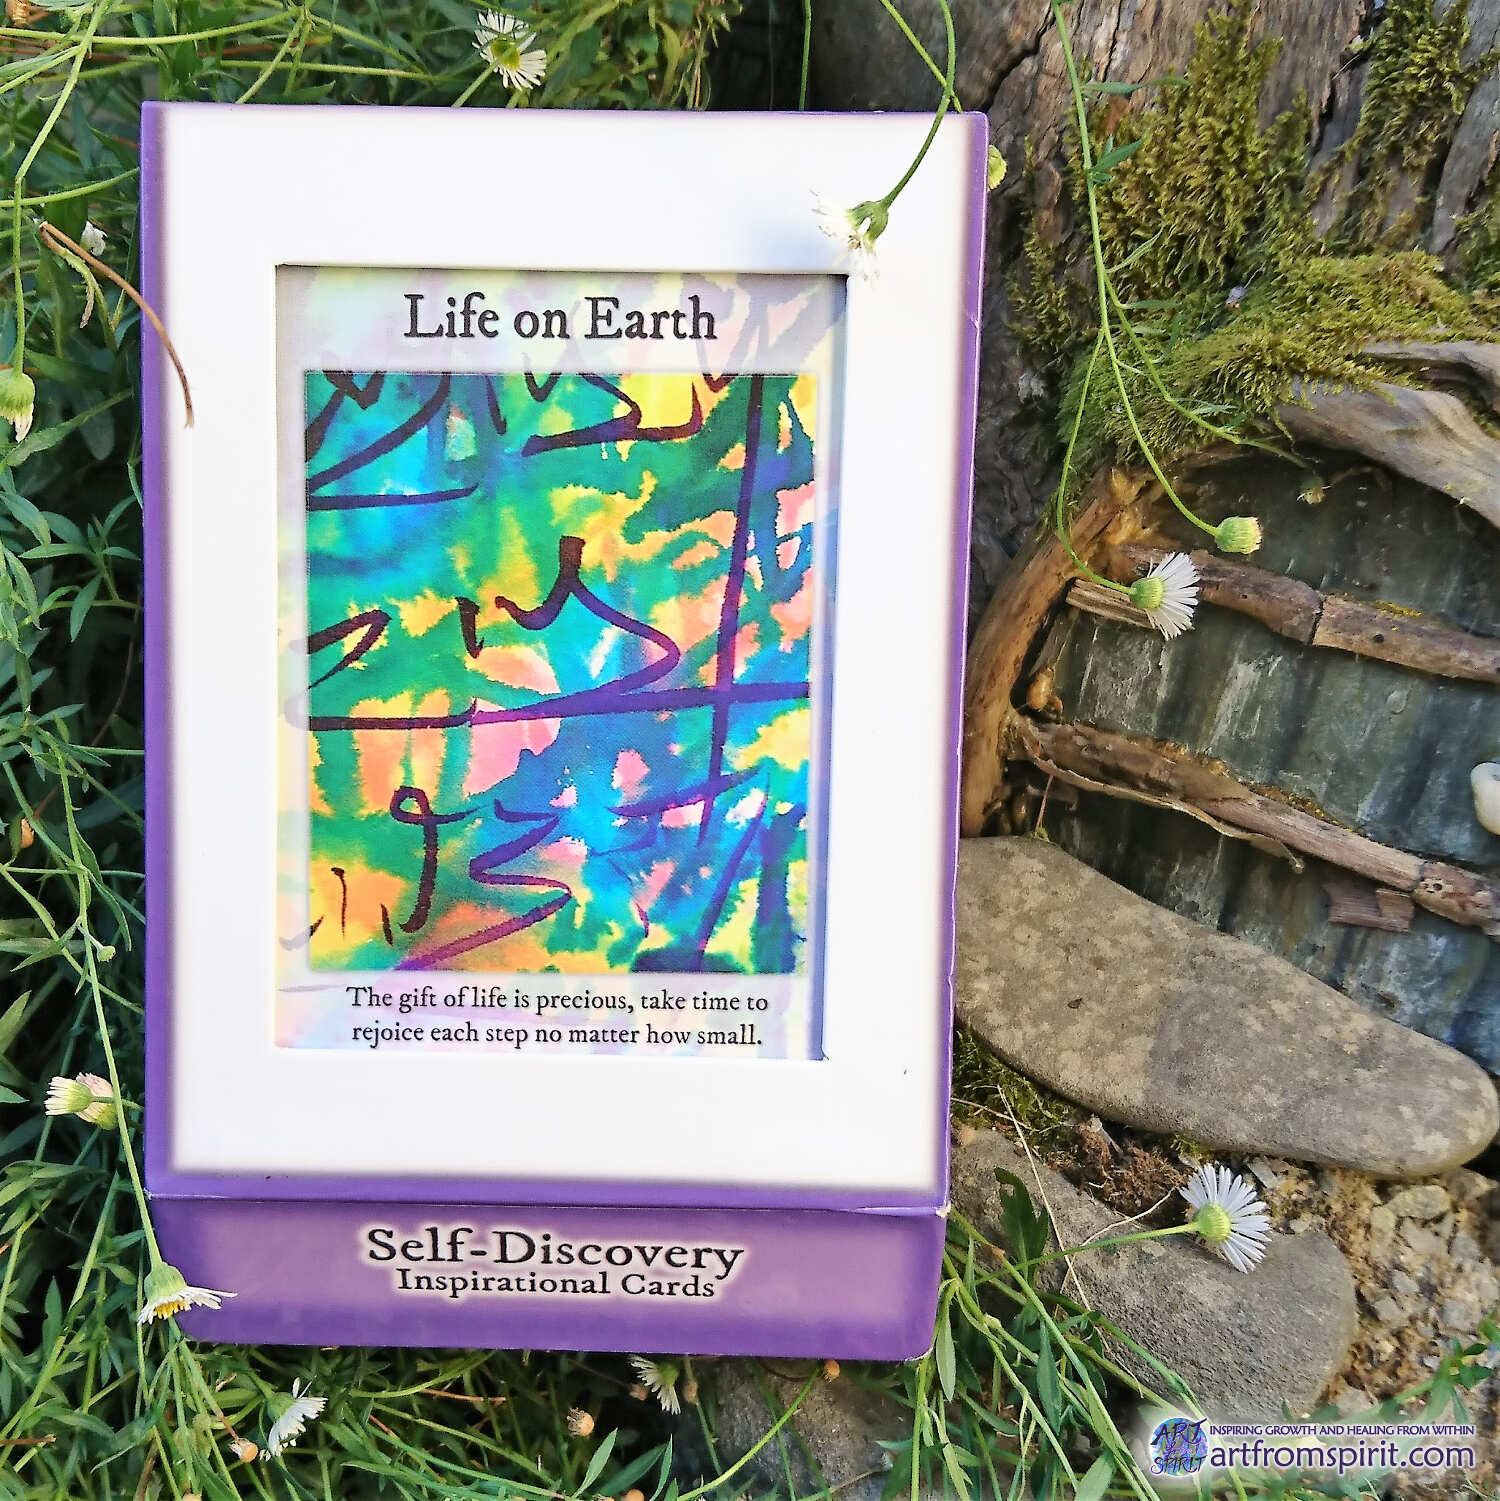 Life on Earth-art-from-spirit-self-discovery-inspirational.jpg